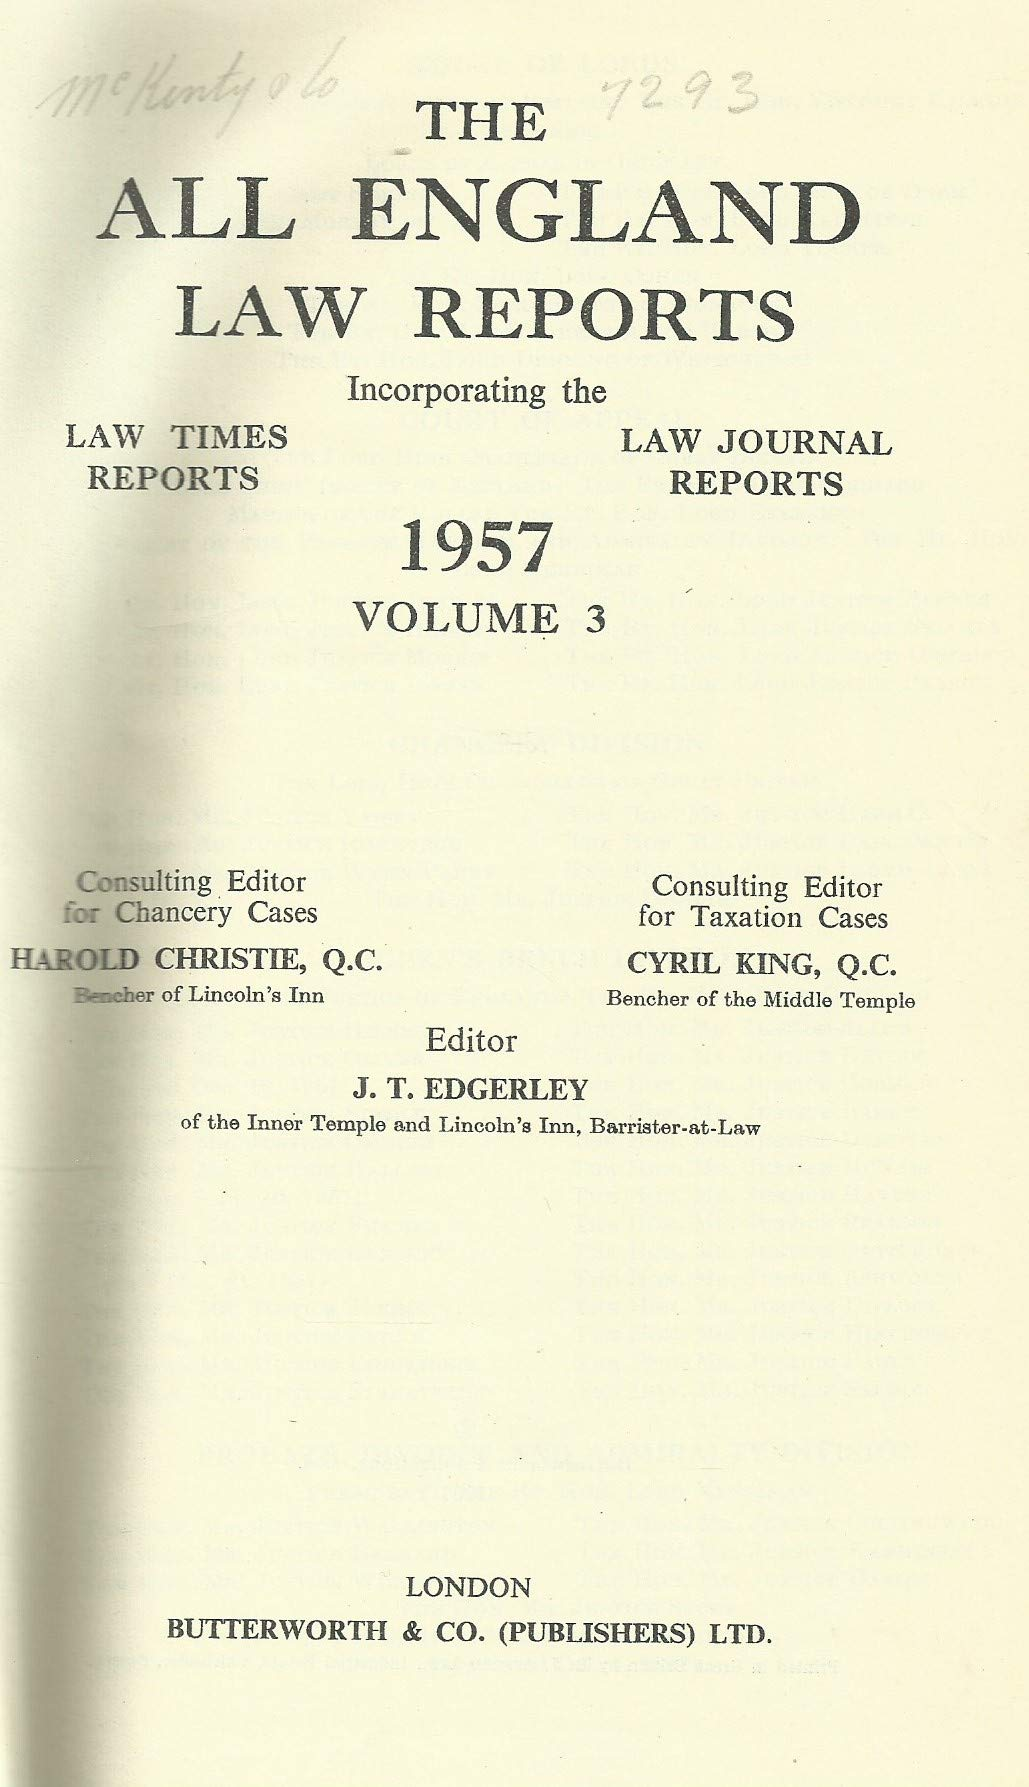 THE ALL ENGLAND LAW REPORTS, 1957: VOLUME 3.